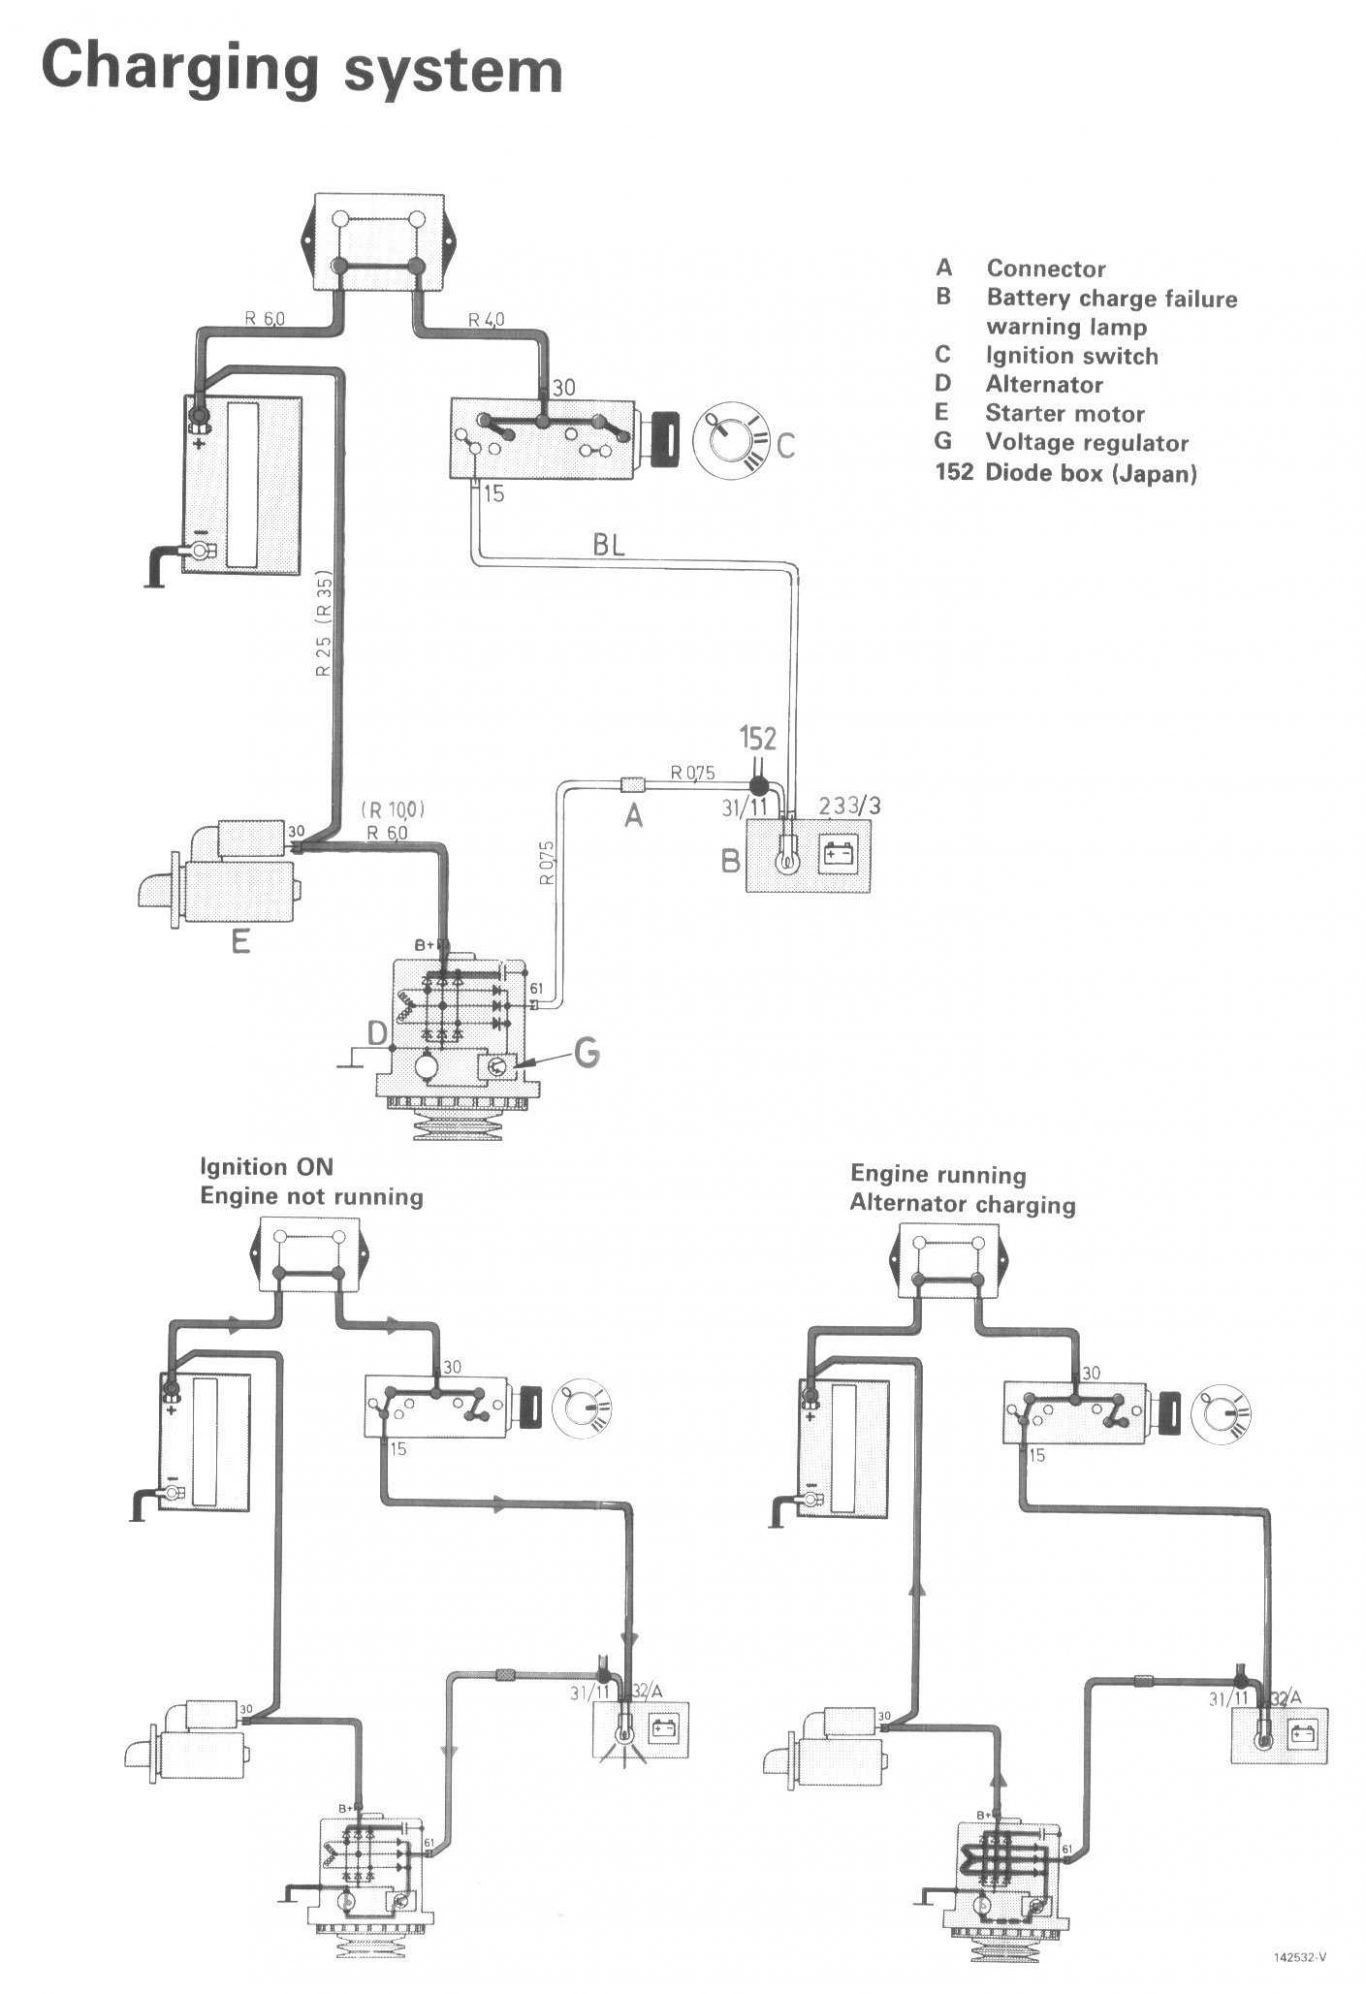 Ford One Wire Alternator Wiring Diagram | Free Wiring Diagram - One Wire Alternator Wiring Diagram Chevy